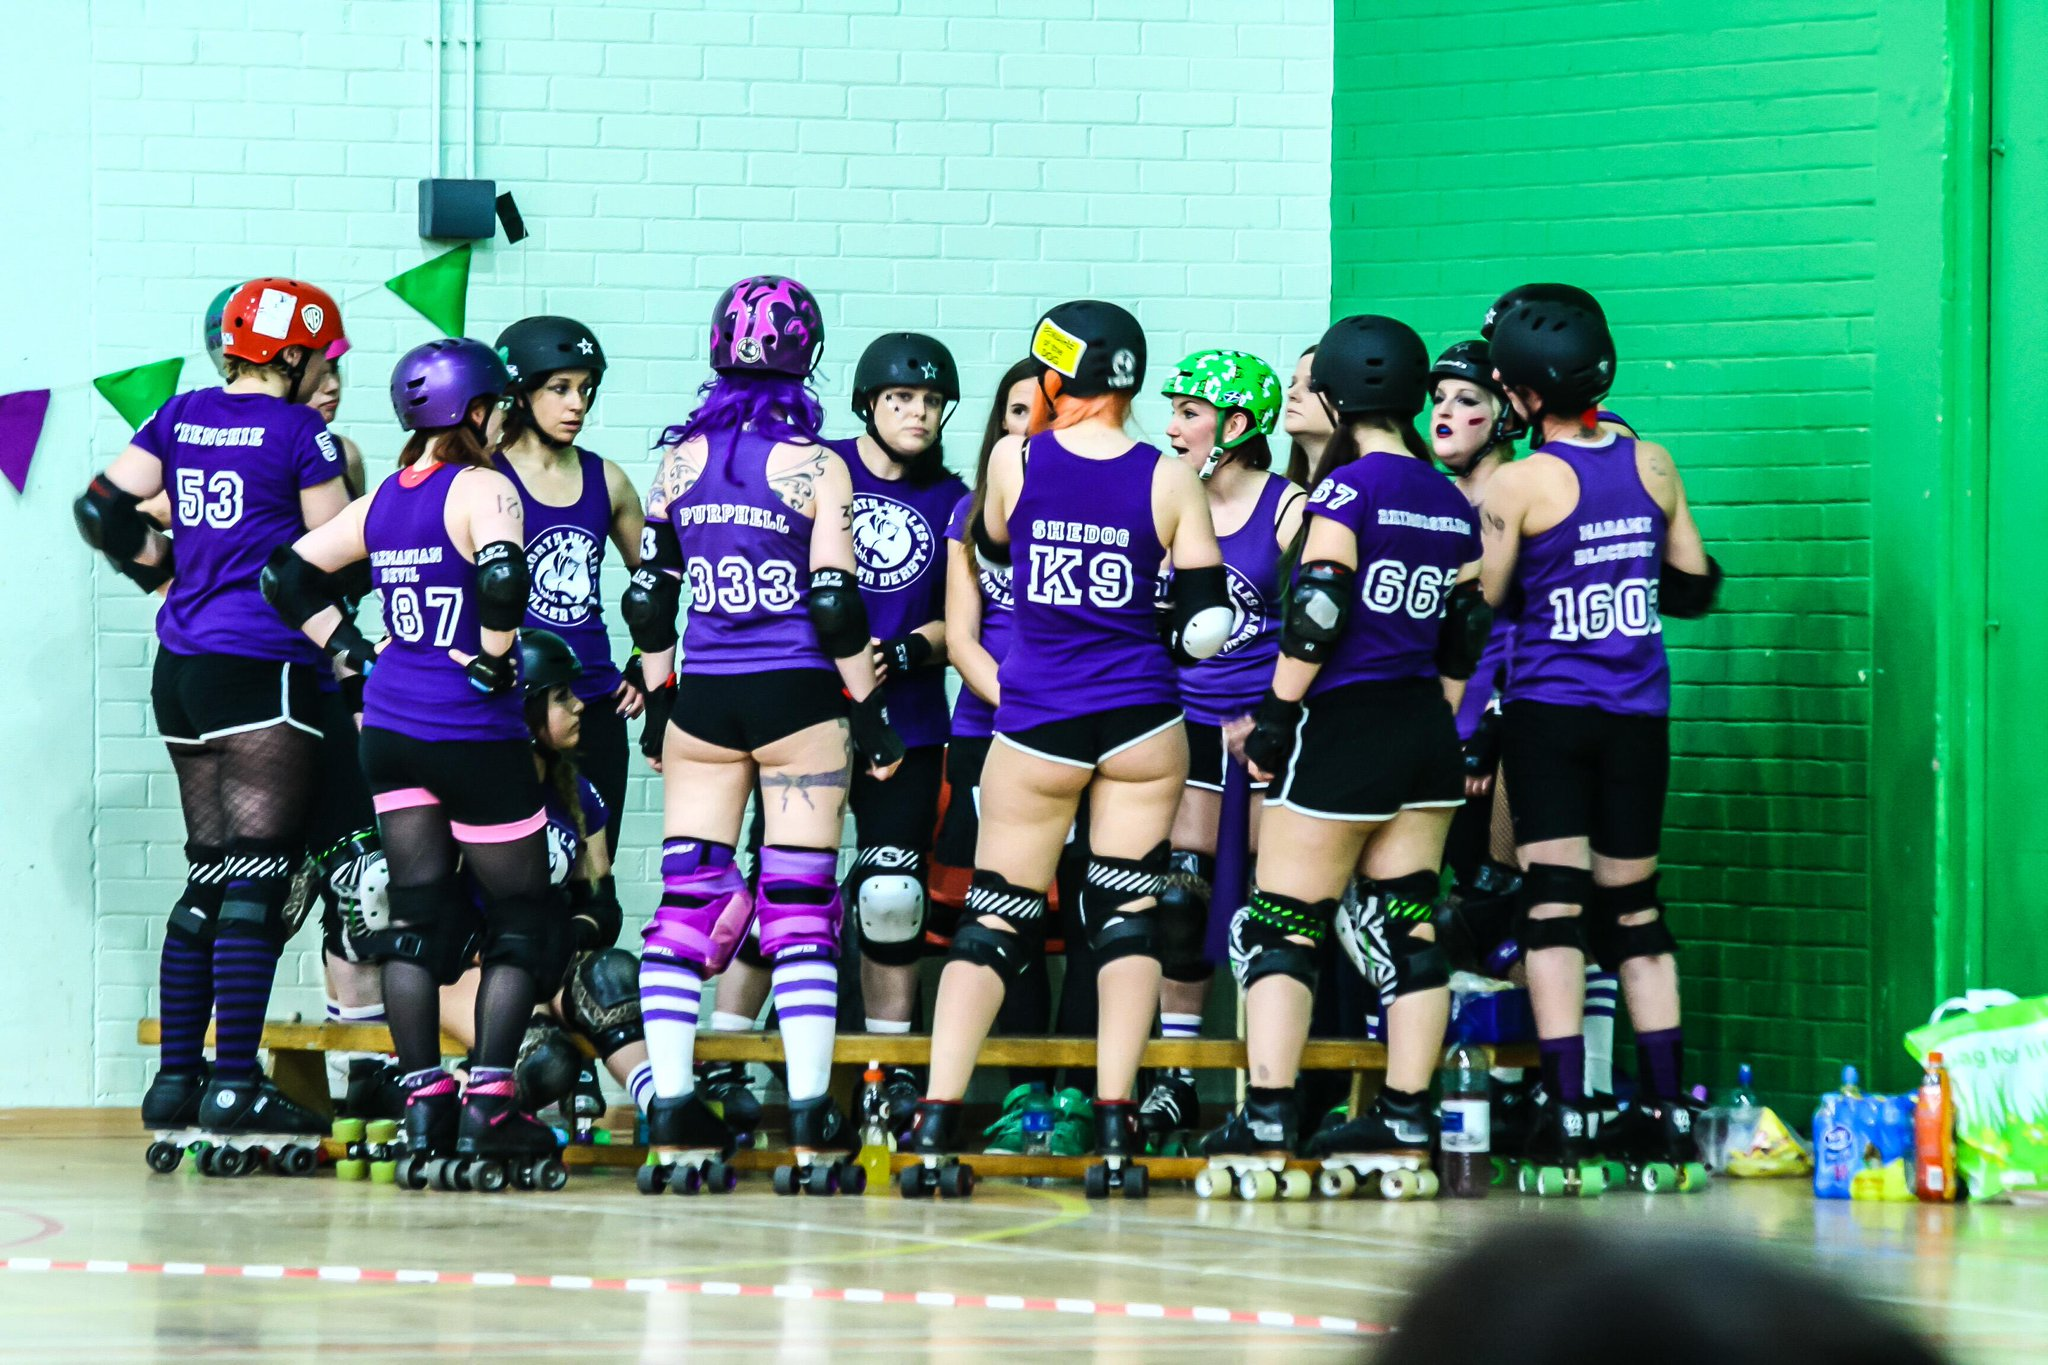 RT @pone77: #Nwrd Getting ready for the bout. #RollerDerby http://t.co/7oA5NmTZS1